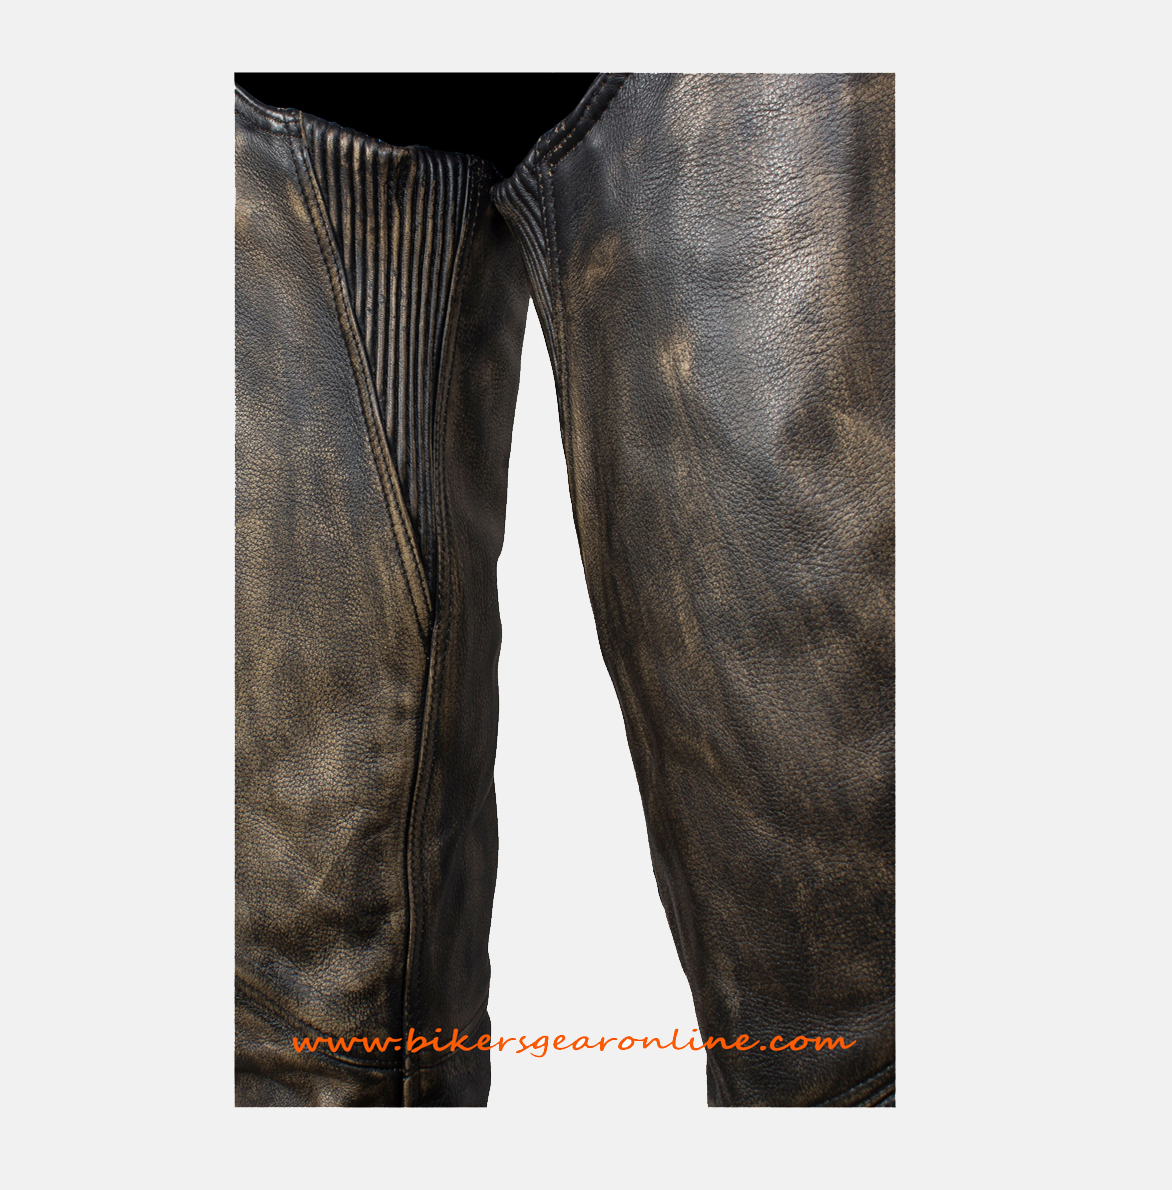 biker pants leather